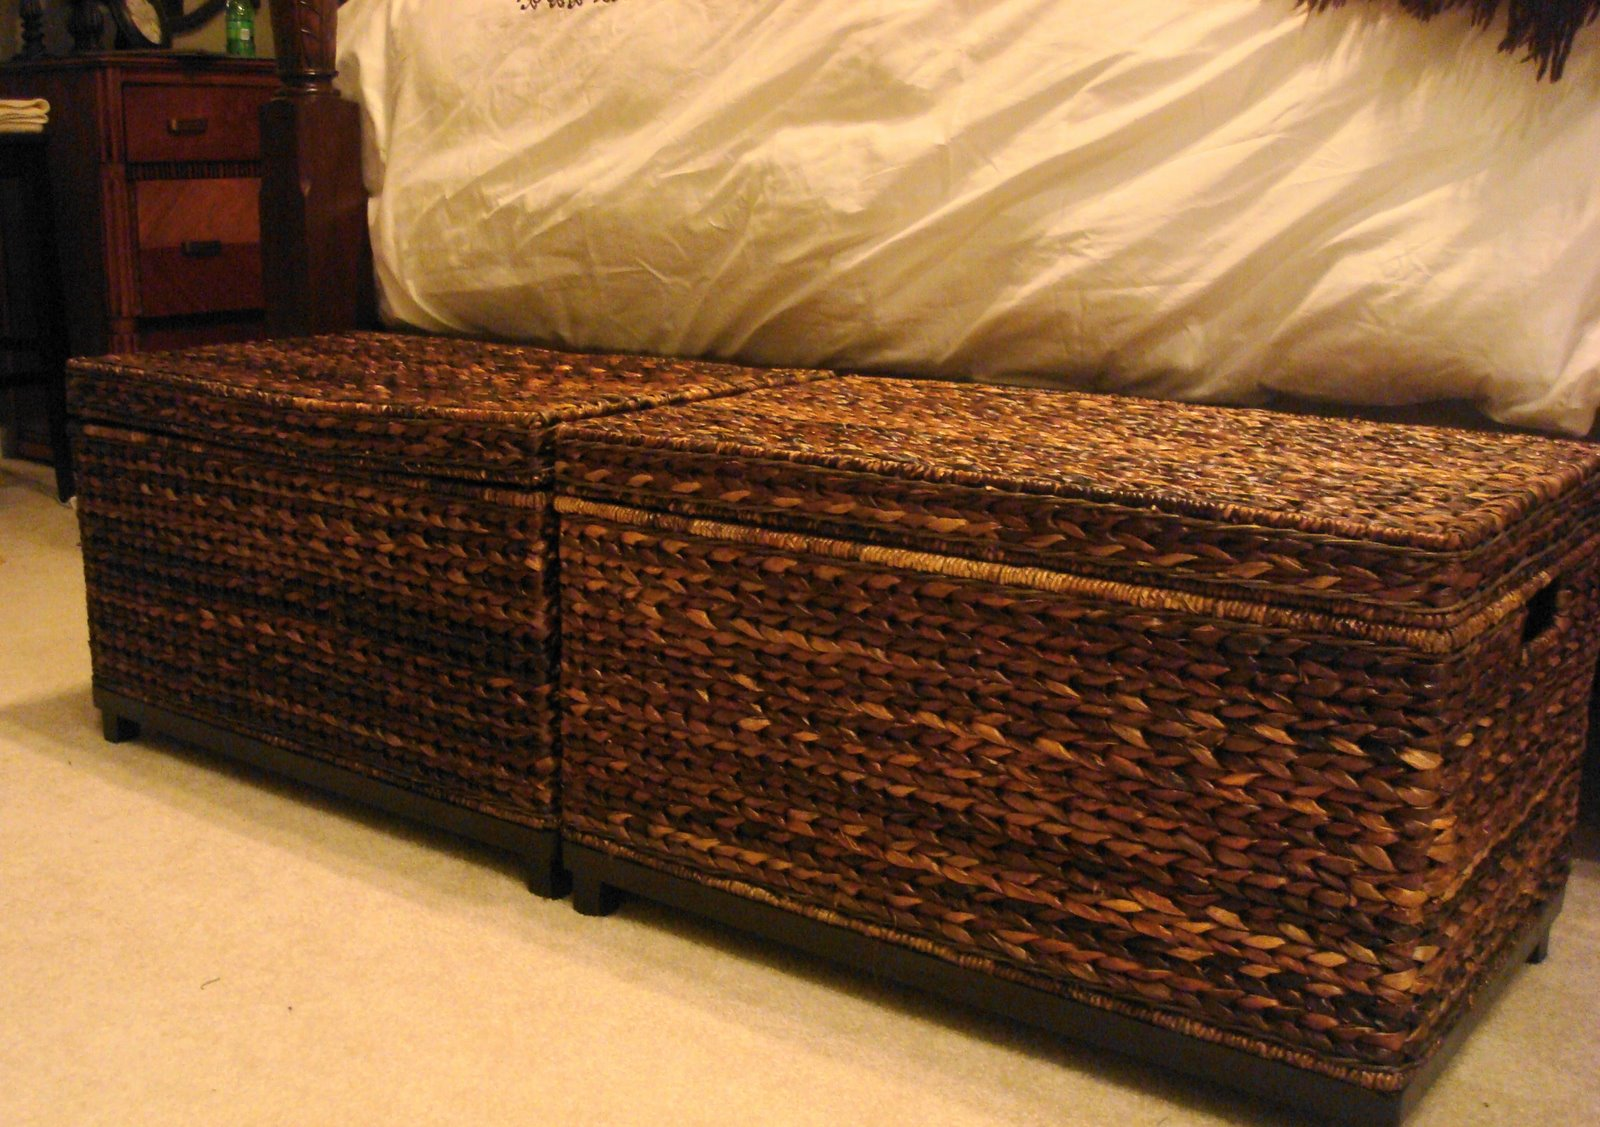 Large rattan storage bins